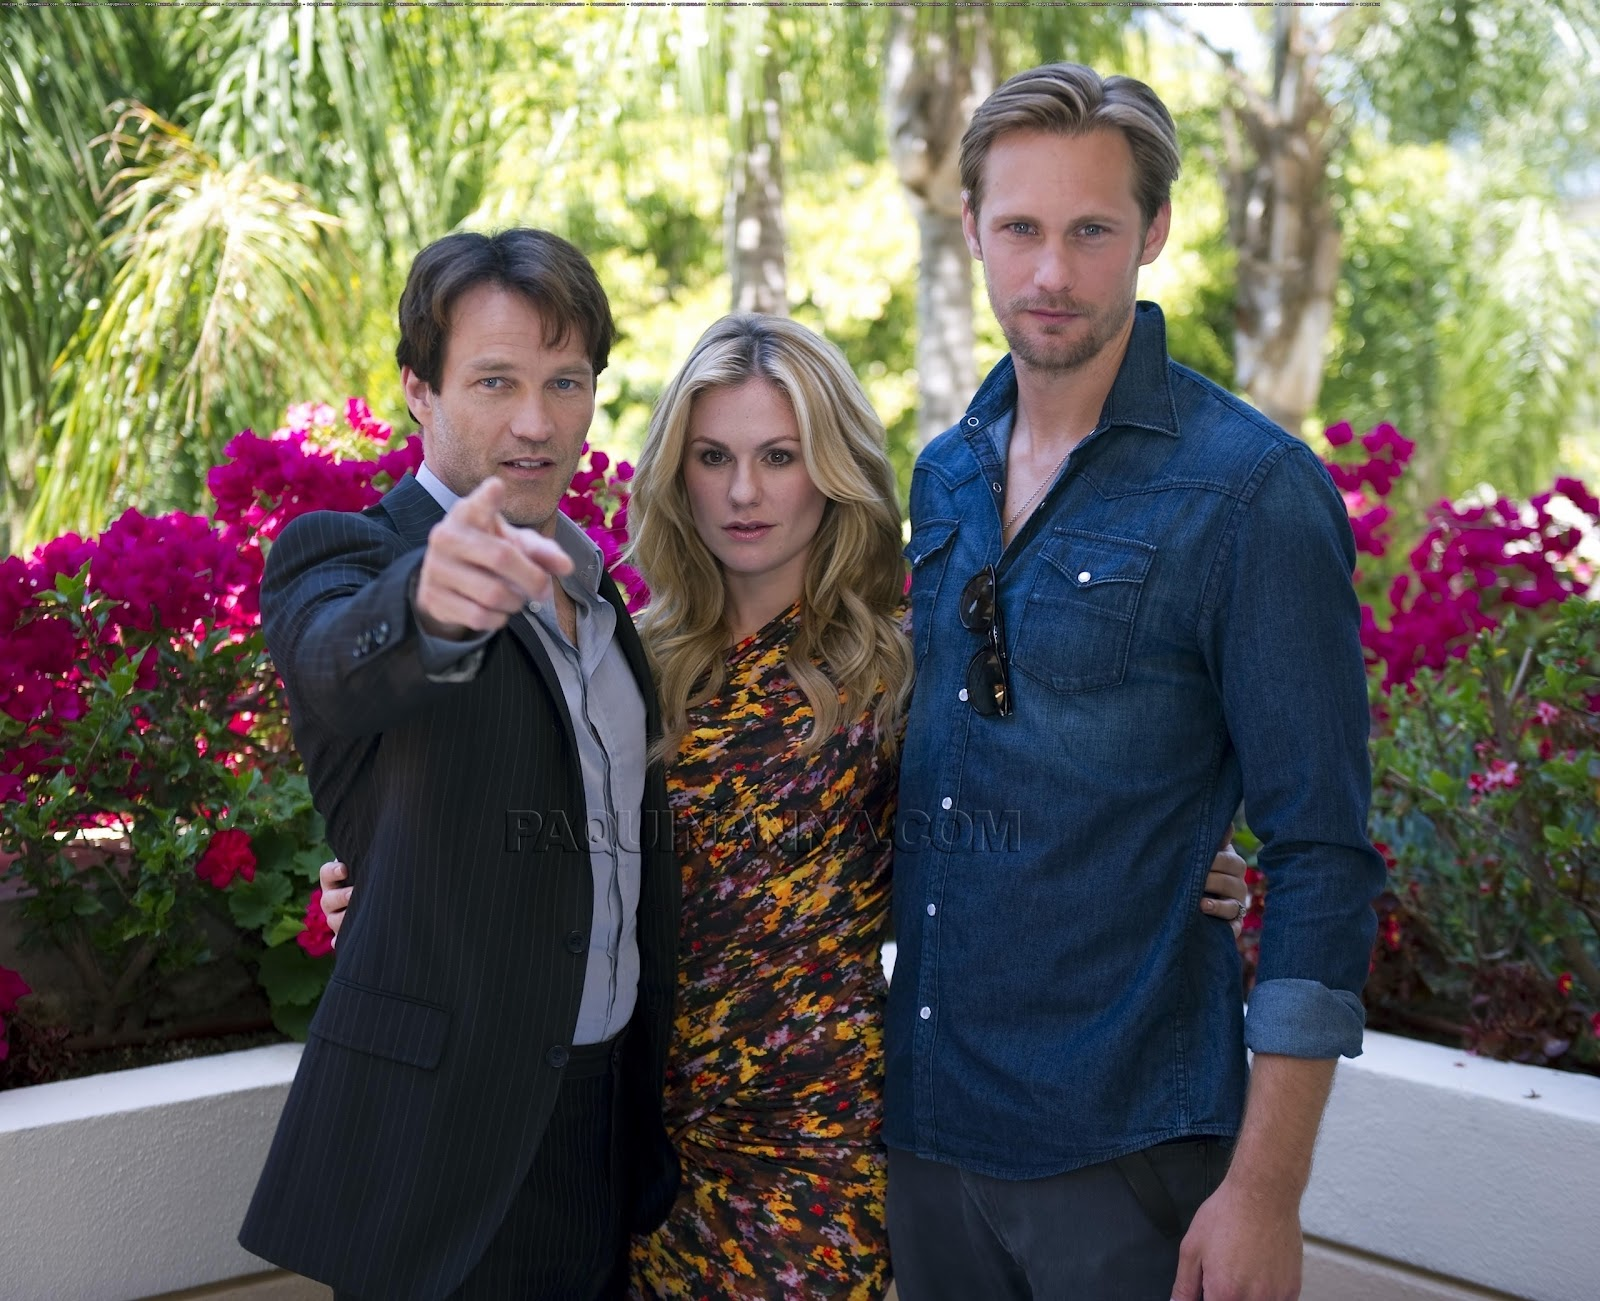 http://3.bp.blogspot.com/-GvIgiqW2bC4/T1HphVauDtI/AAAAAAAABvM/Z1BwPkOVSfk/s1600/Stephen-Moyer-Anna-Paquin-and-Alexander-Skarsgard-at-a-True-Blood-press-conference-sookie-and-eric-13888397-2560-2081.jpg